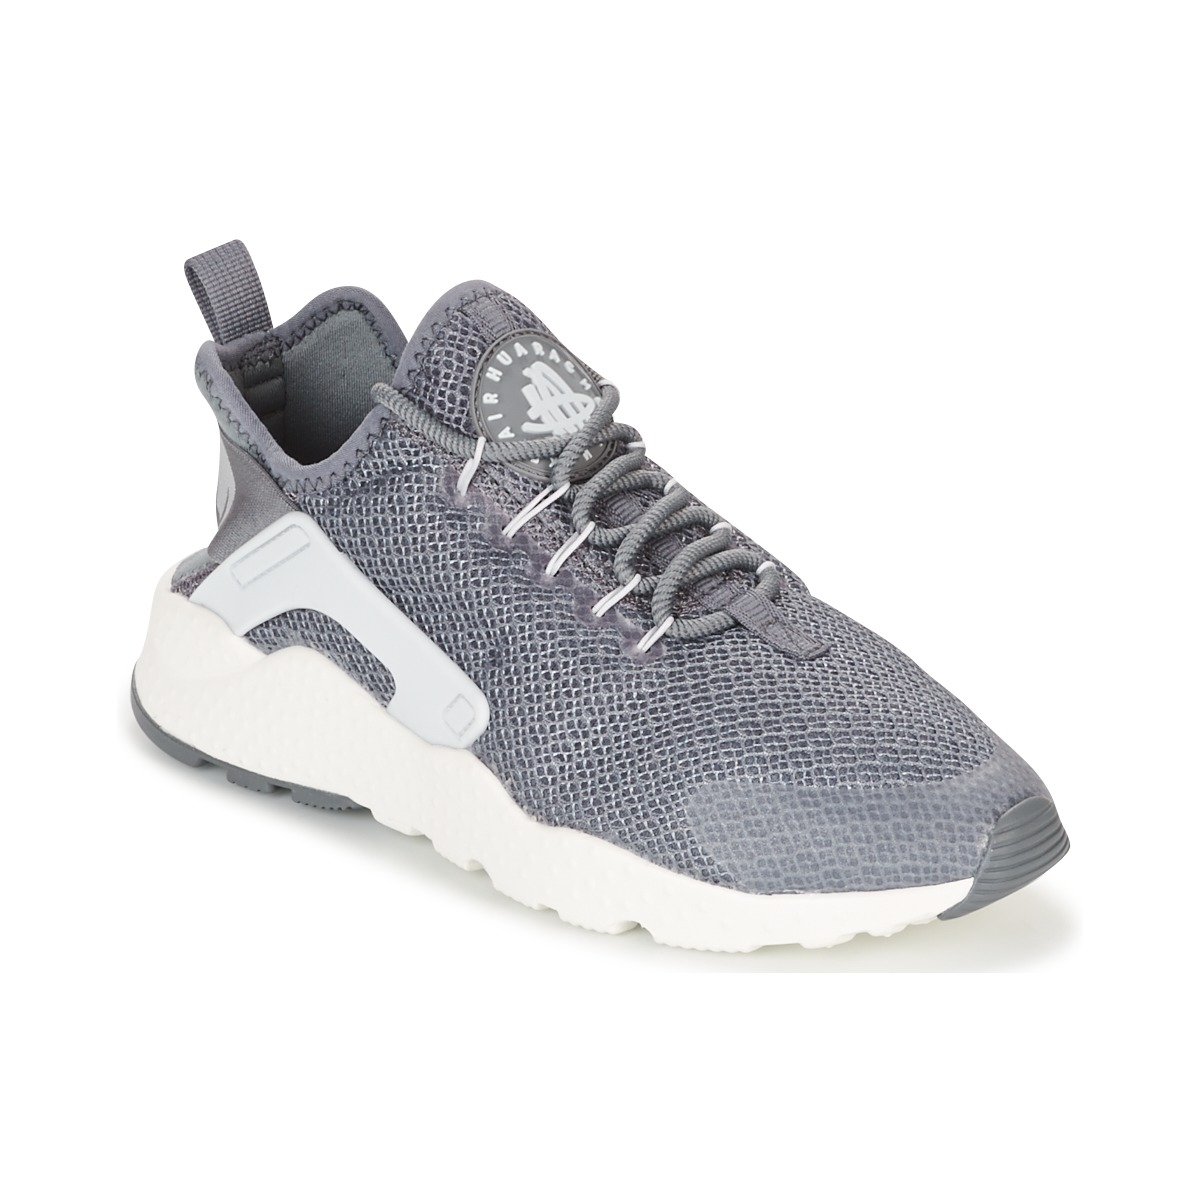 nike air huarache run ultra w gris pas cher baskets femme spartoo ventes pas. Black Bedroom Furniture Sets. Home Design Ideas